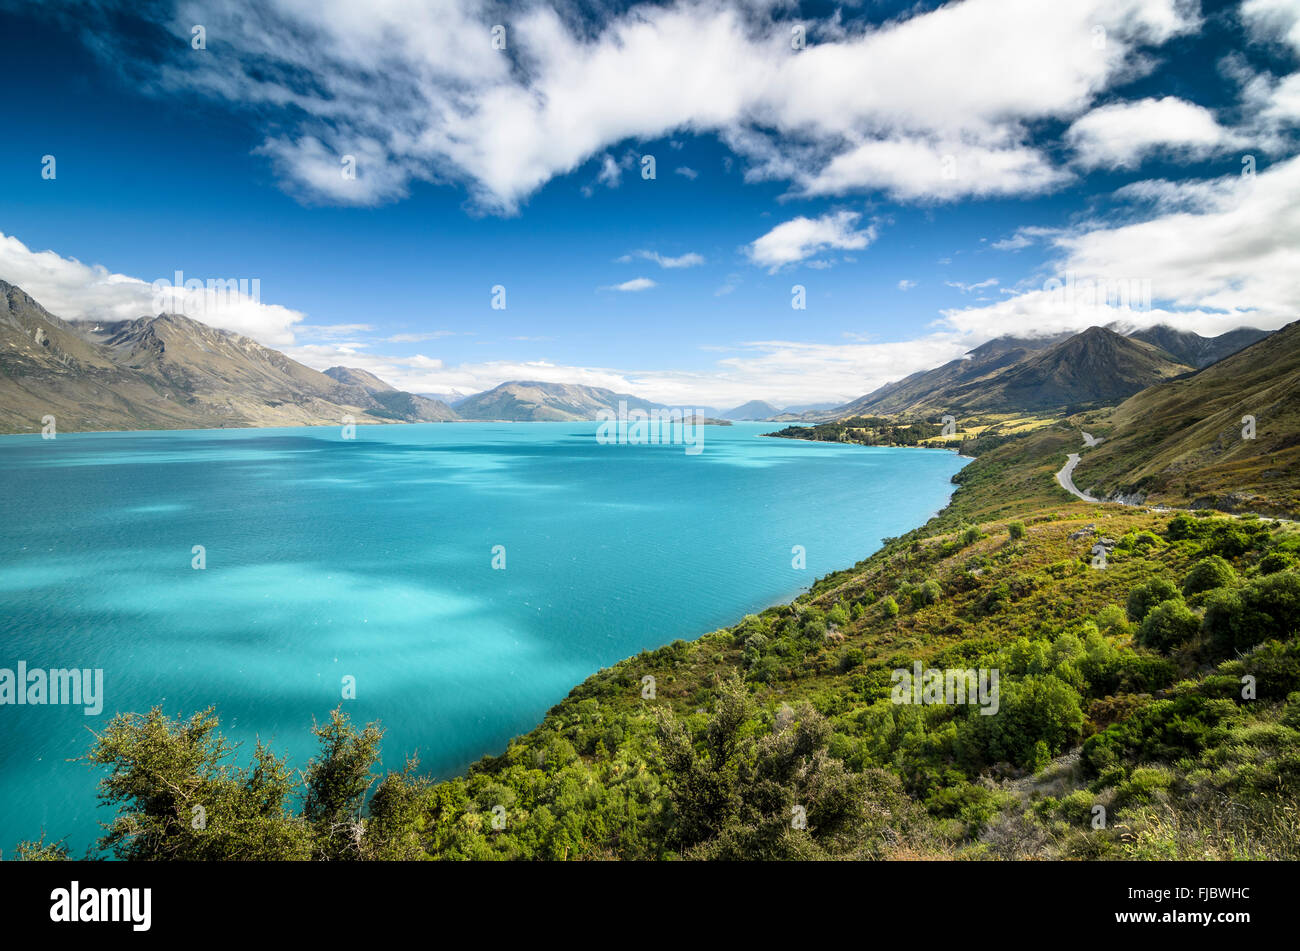 Blue sky with clouds over turquoise lake, Lake Wakatipu, right Glenorchy-Queenstown Road, New Zealand, South Island - Stock Image